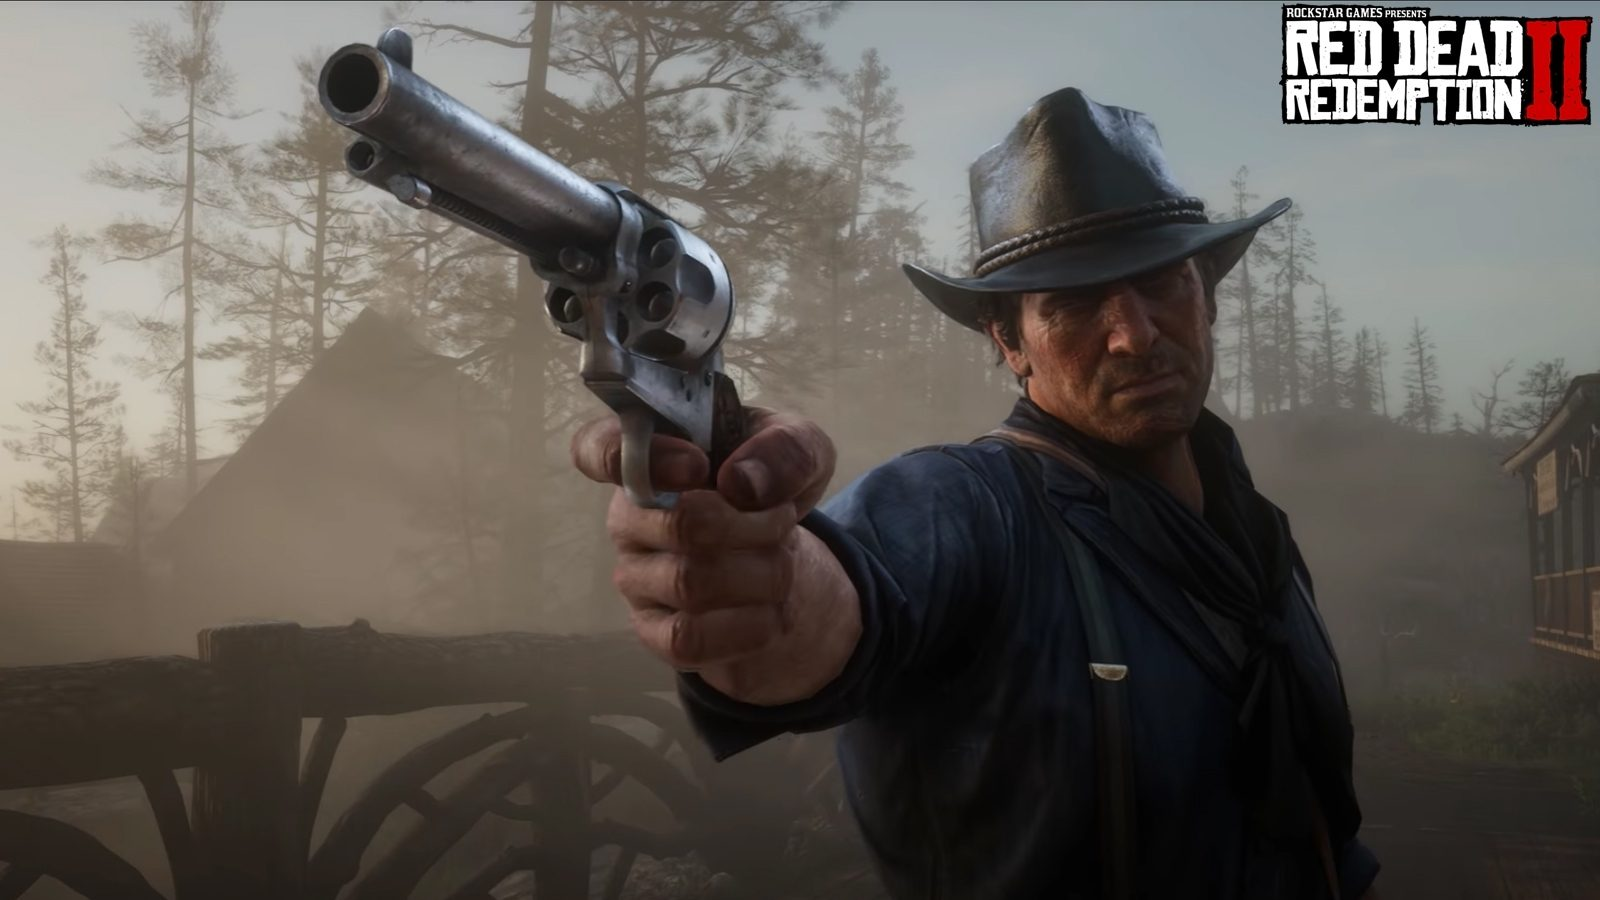 Red Dead Redemption 2 2102018 3